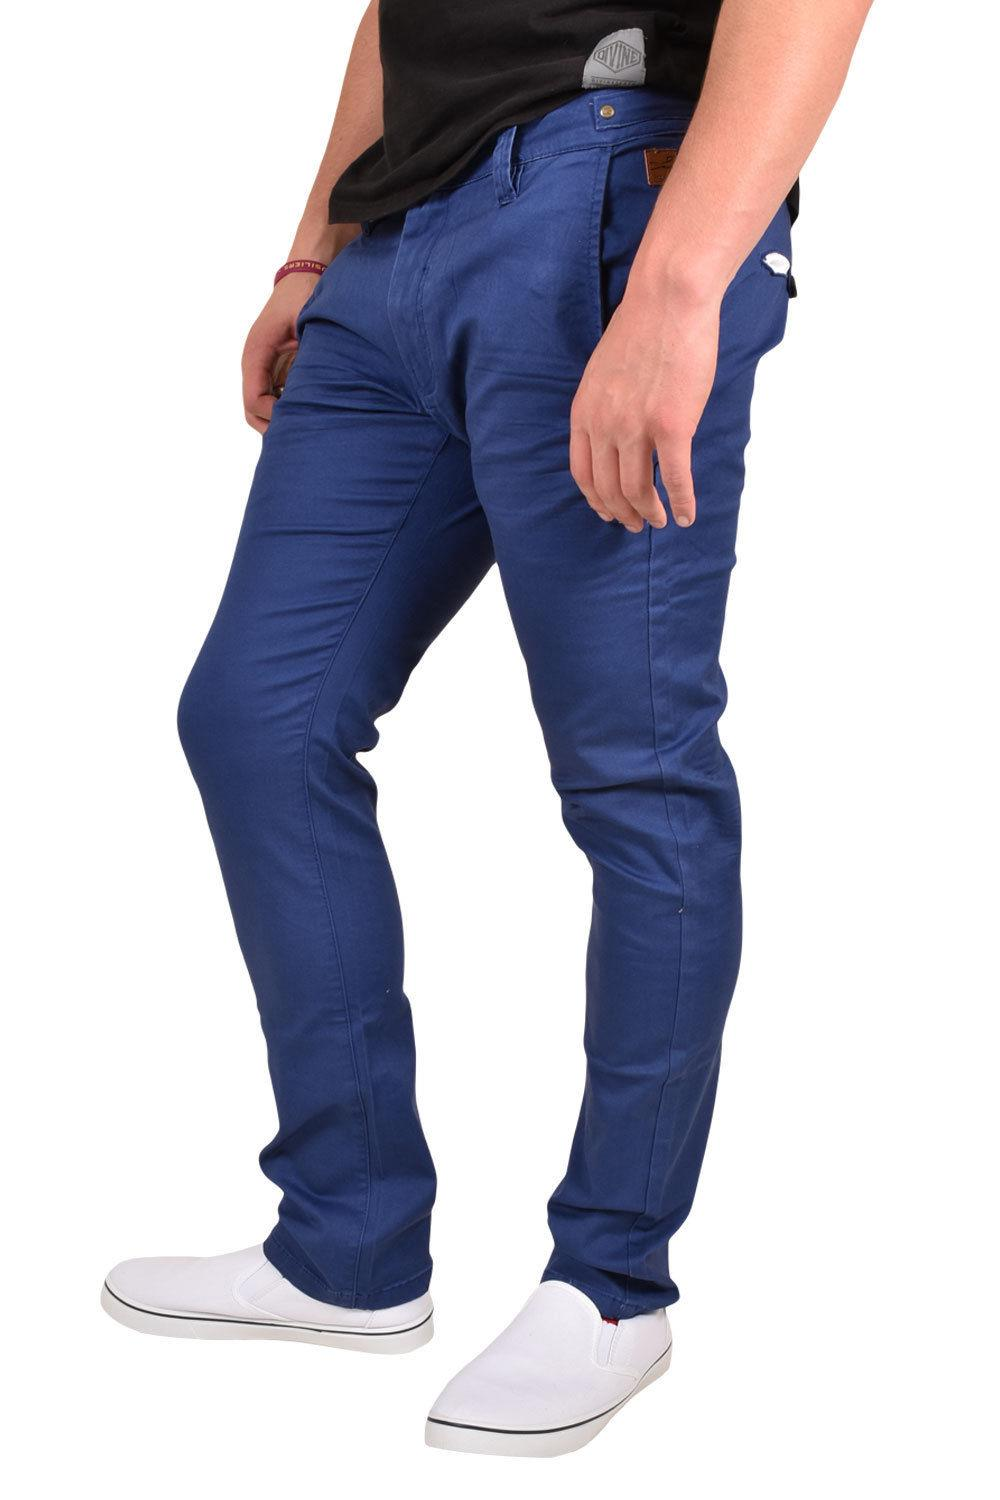 New-Mens-Designer-Jacksouth-Chino-Regular-Fit-Stretch-Cotton-Rich-Twill-Trousers thumbnail 4